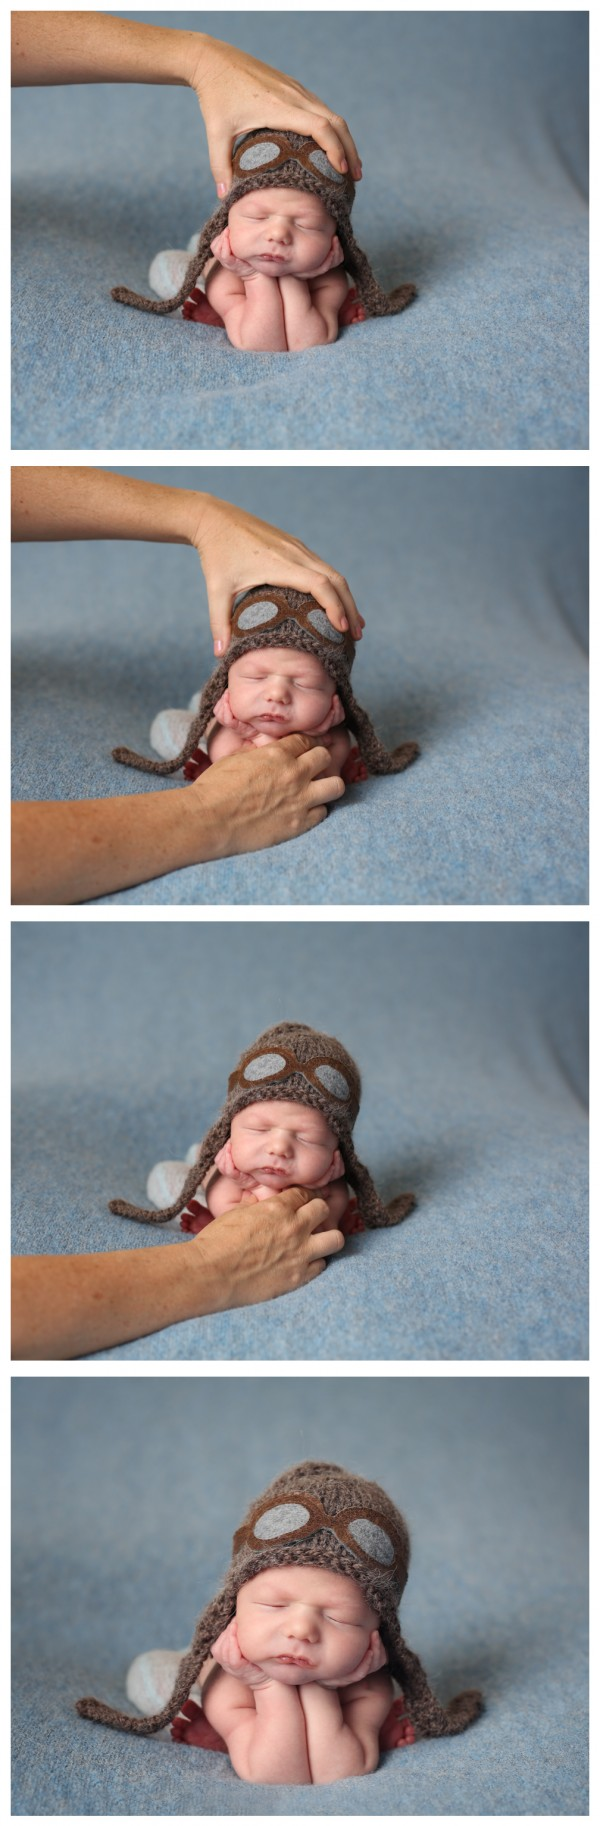 blog-600x18261 How to Capture Newborn Composite Images Safely Photography Tips Photoshop Tips & Tutorials